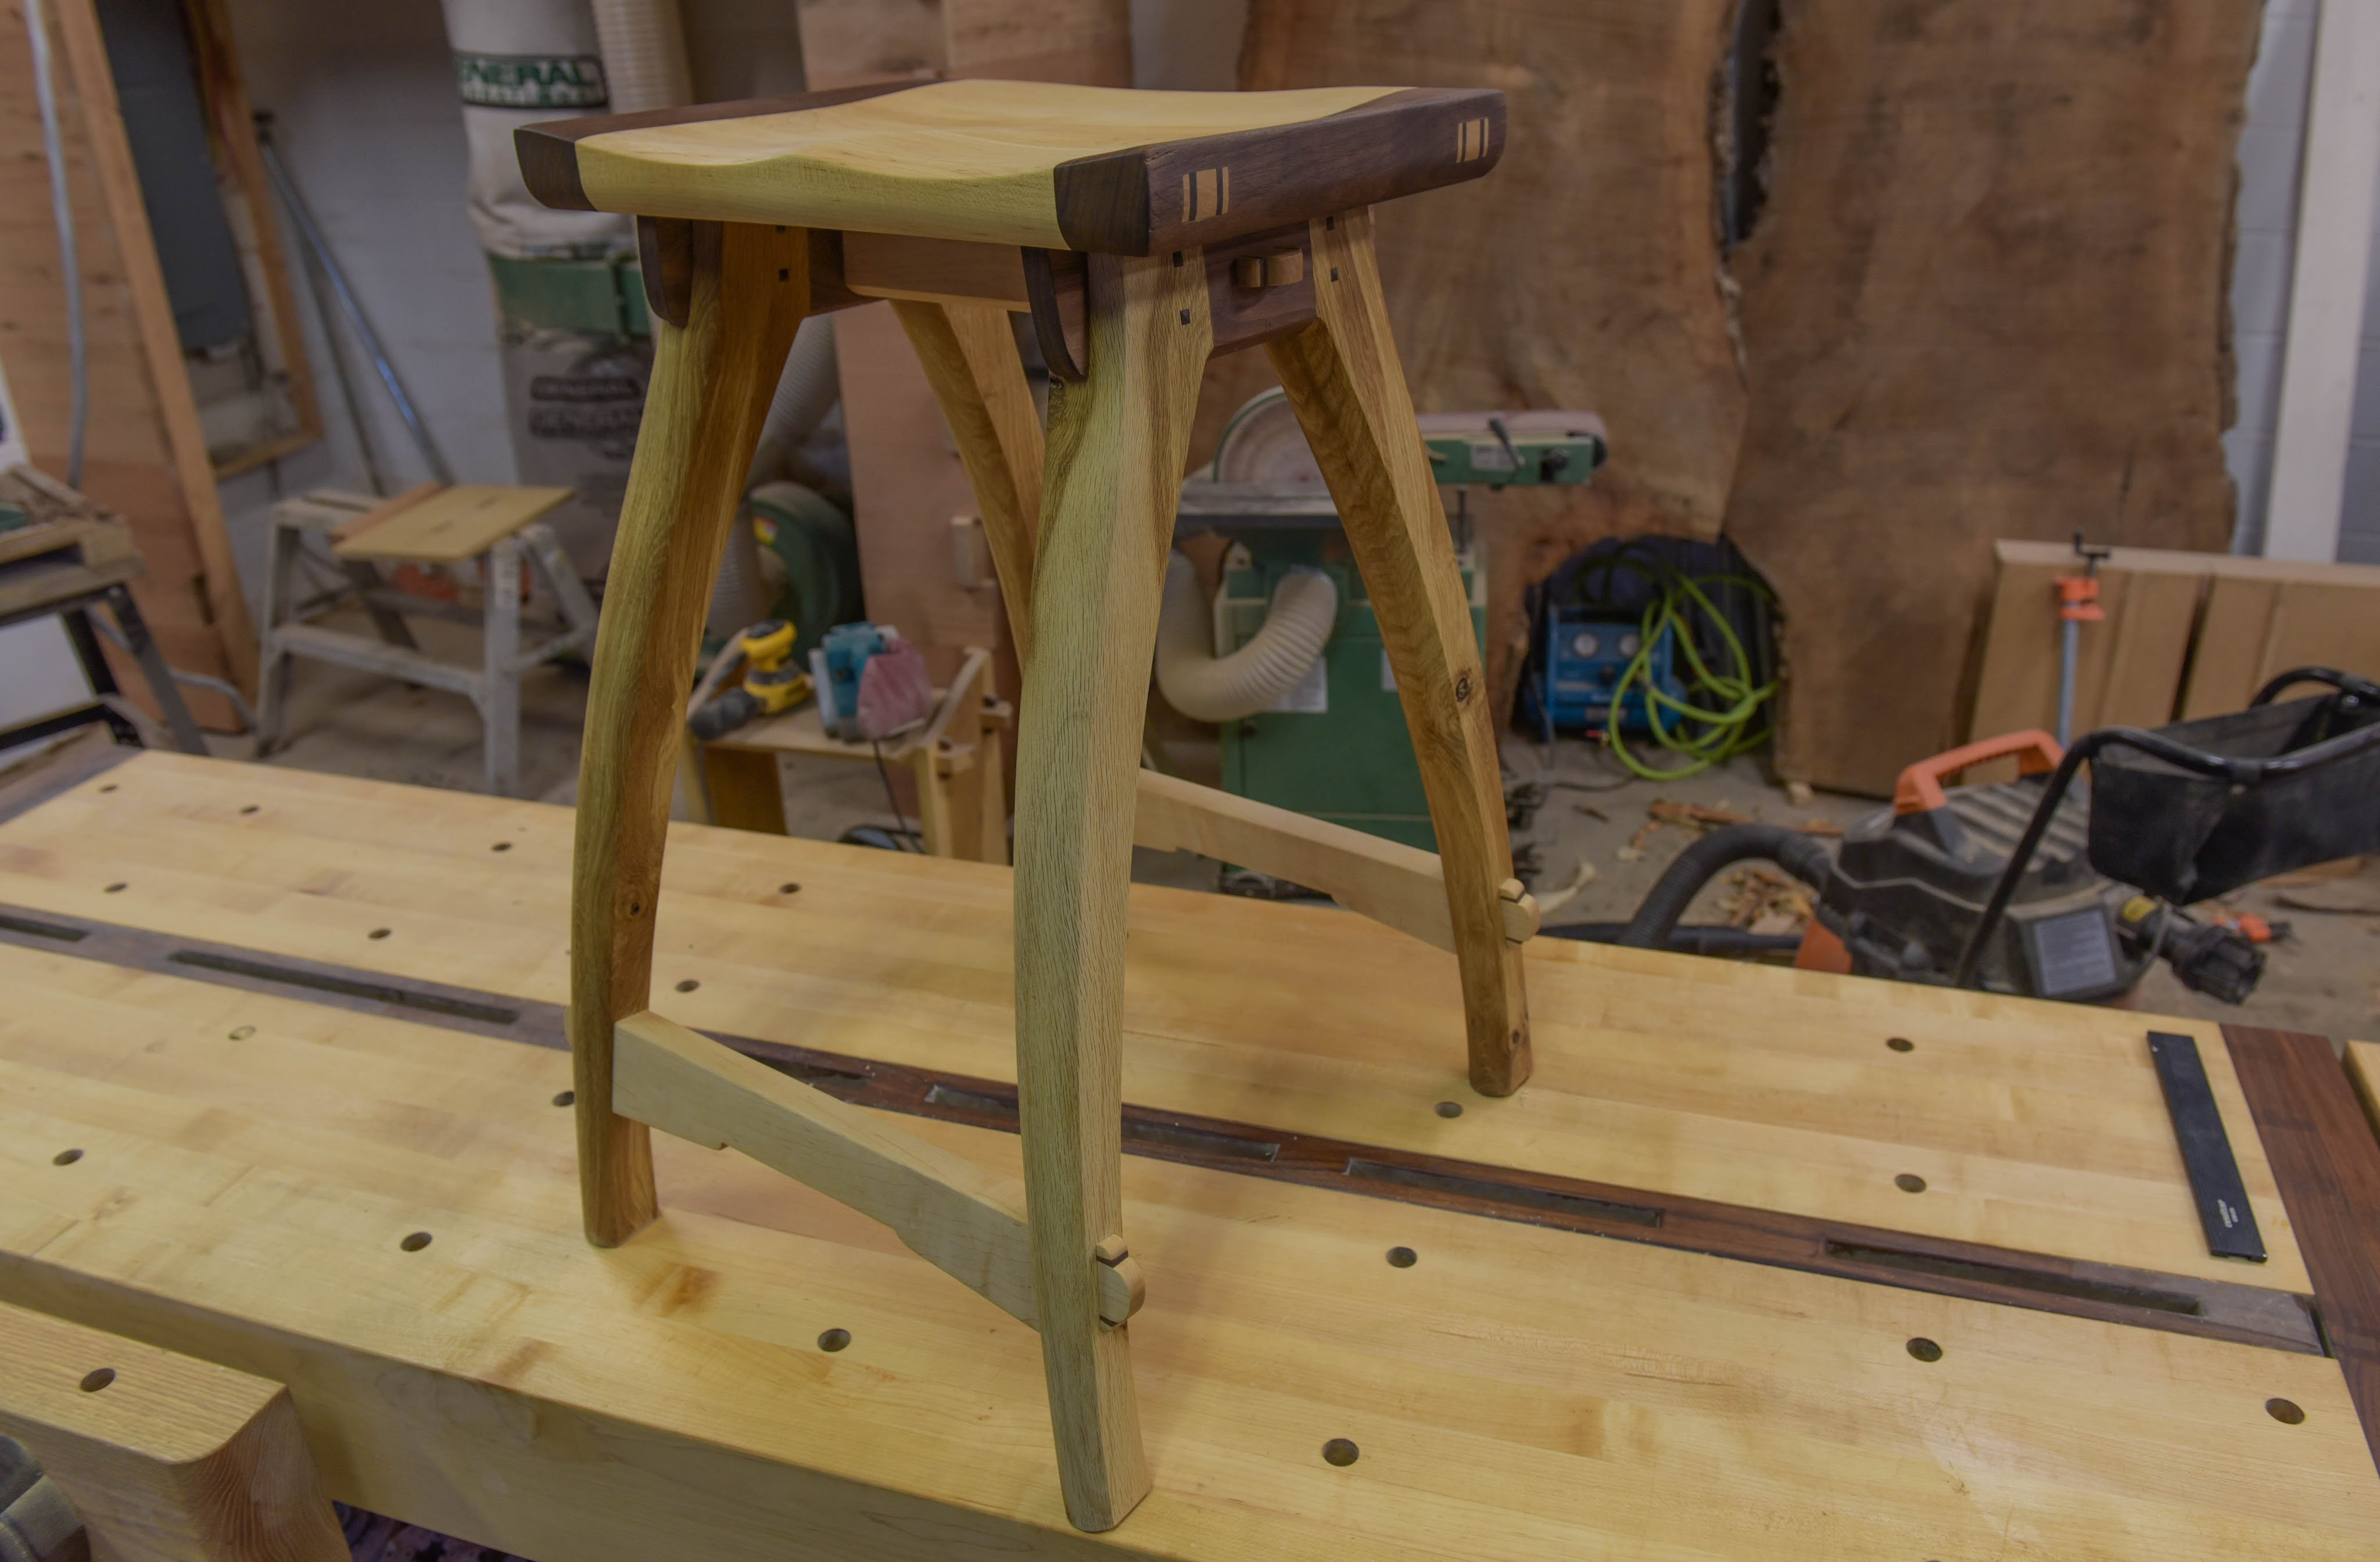 Woodworking, Shop Stool With Old School Joinery - The Samurai Carpenter